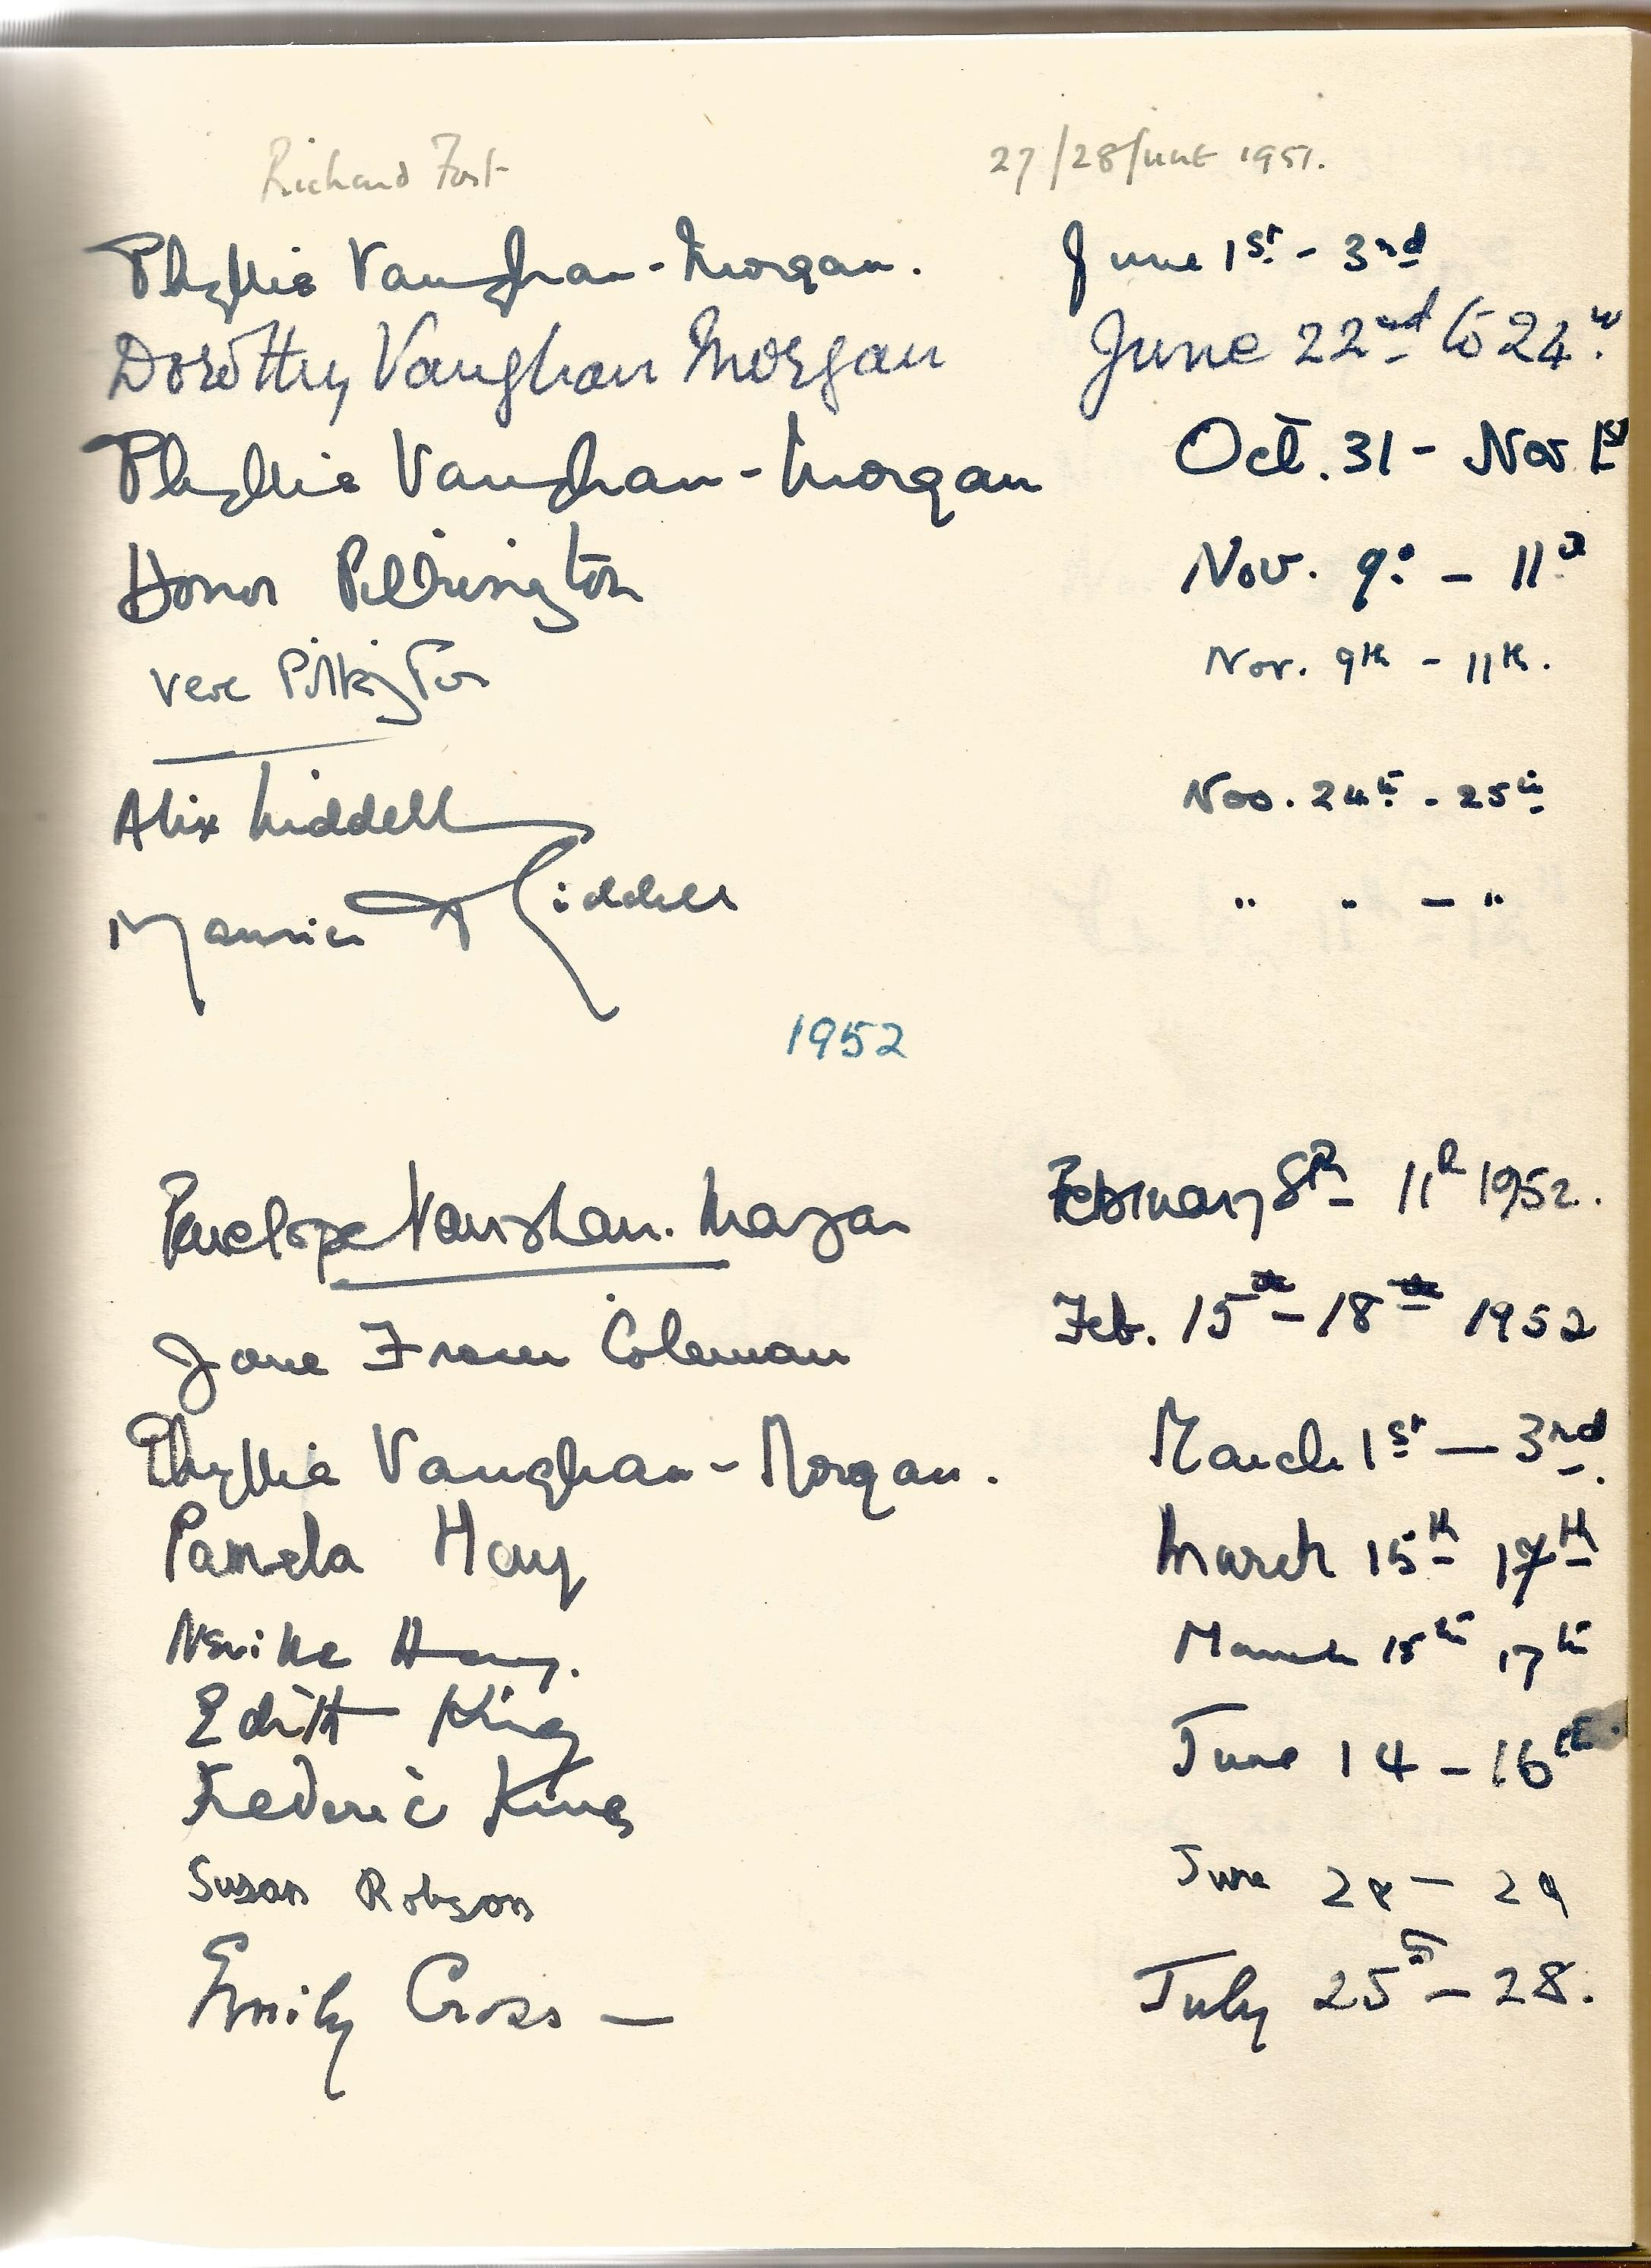 Hardback Book Expensively made visitors Book with slipcase JVM, EVM & 1949 in Gold Lettering on - Image 4 of 8